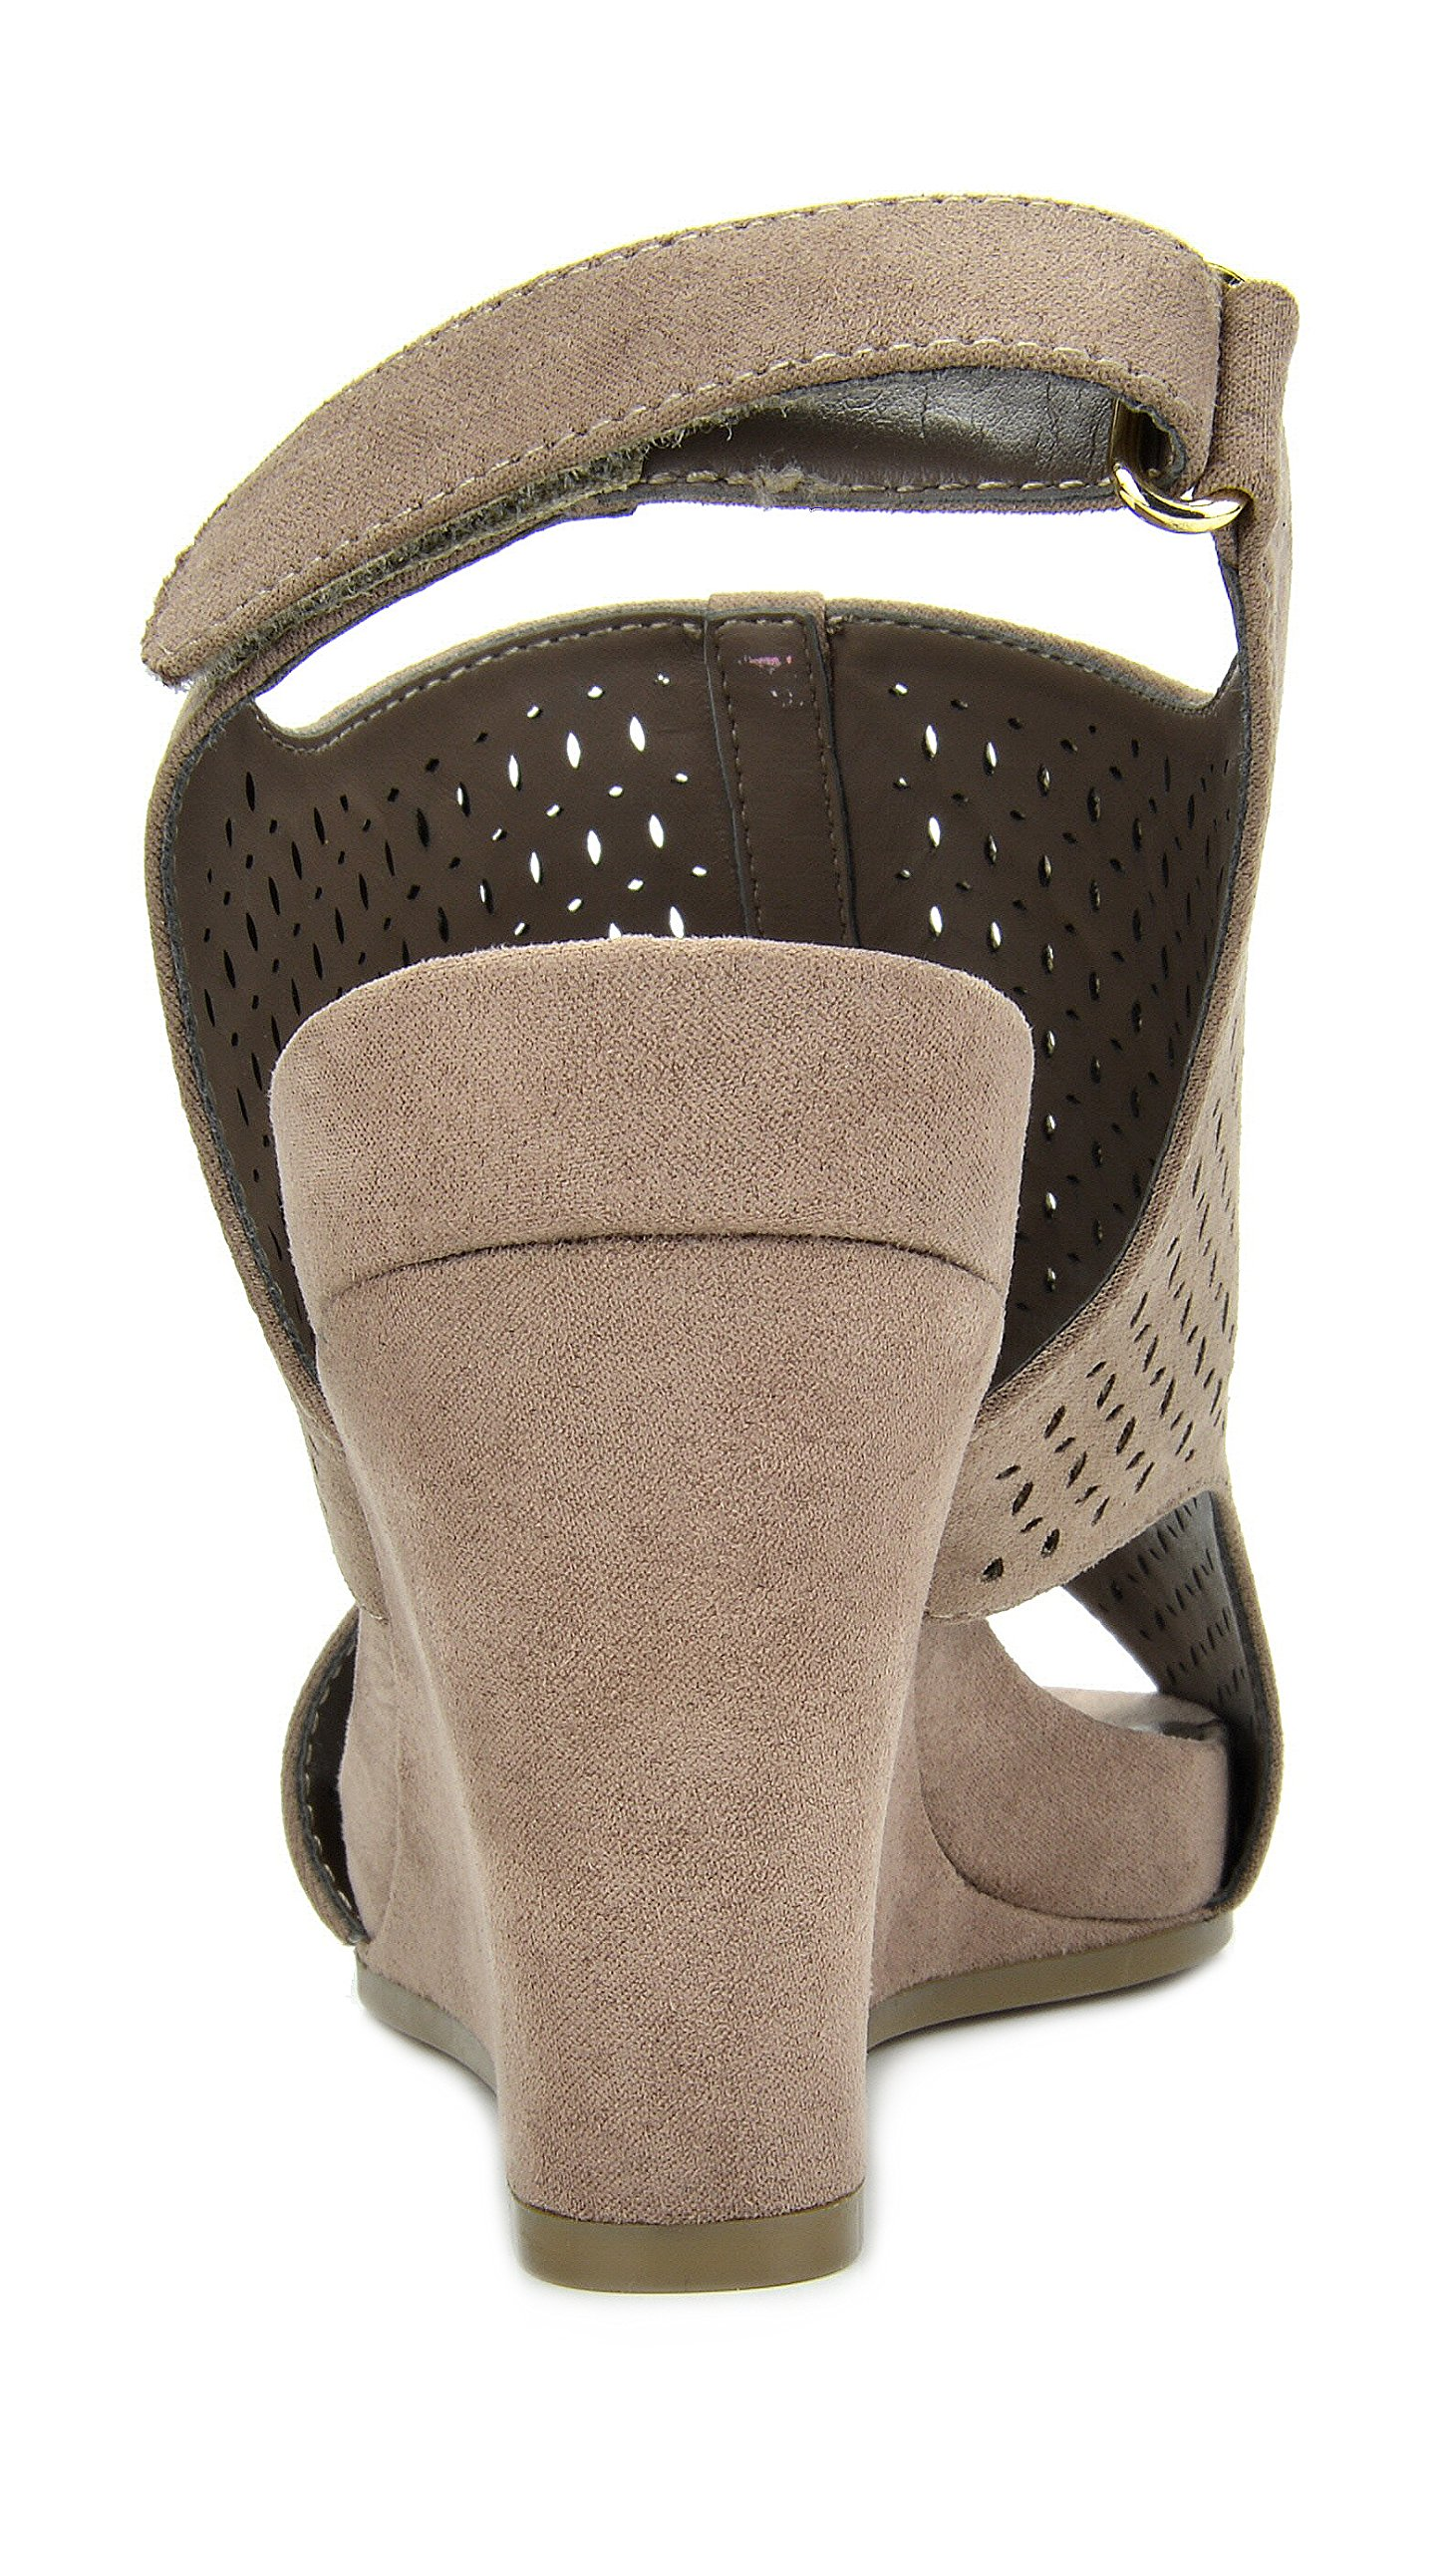 TOETOS Women's Solsoft-6 Taupe Mid Heel Platform Wedges Sandals - 9.5 M US by TOETOS (Image #6)